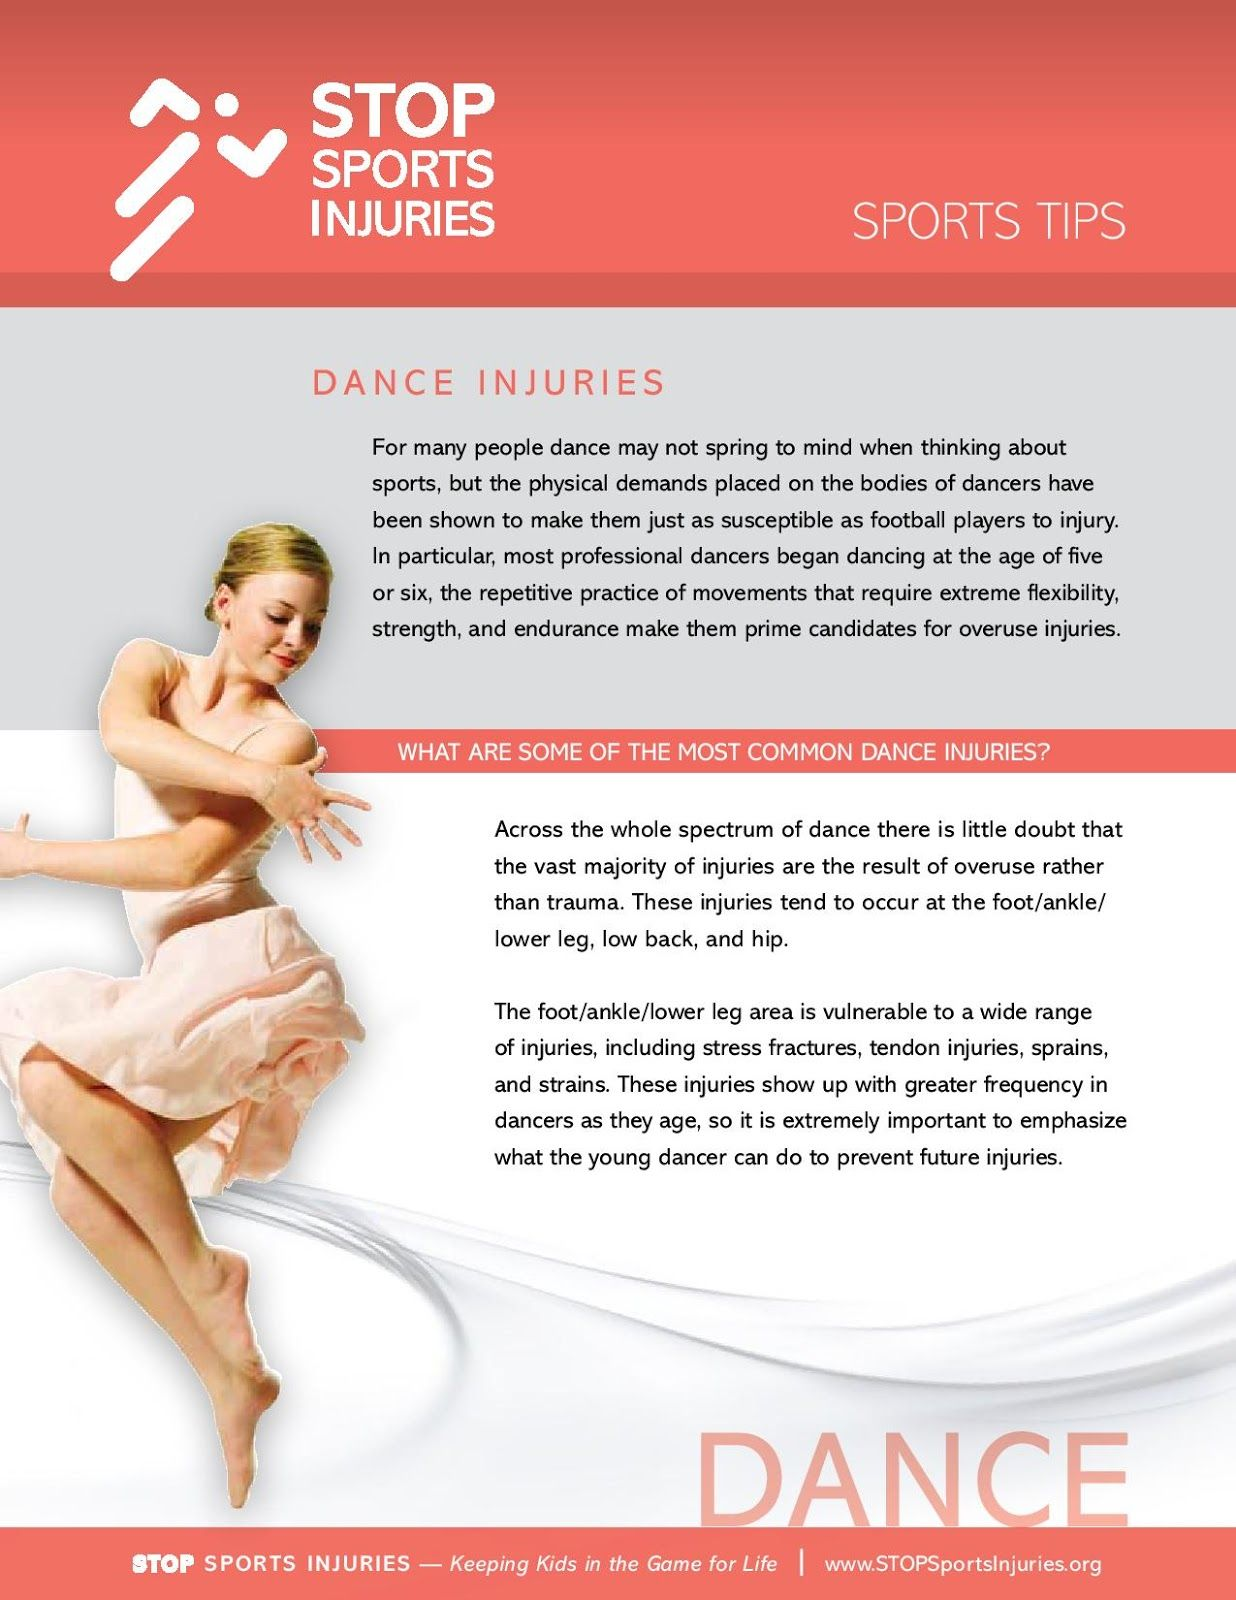 Preventing Dance Injuries Free belly dance classes (With